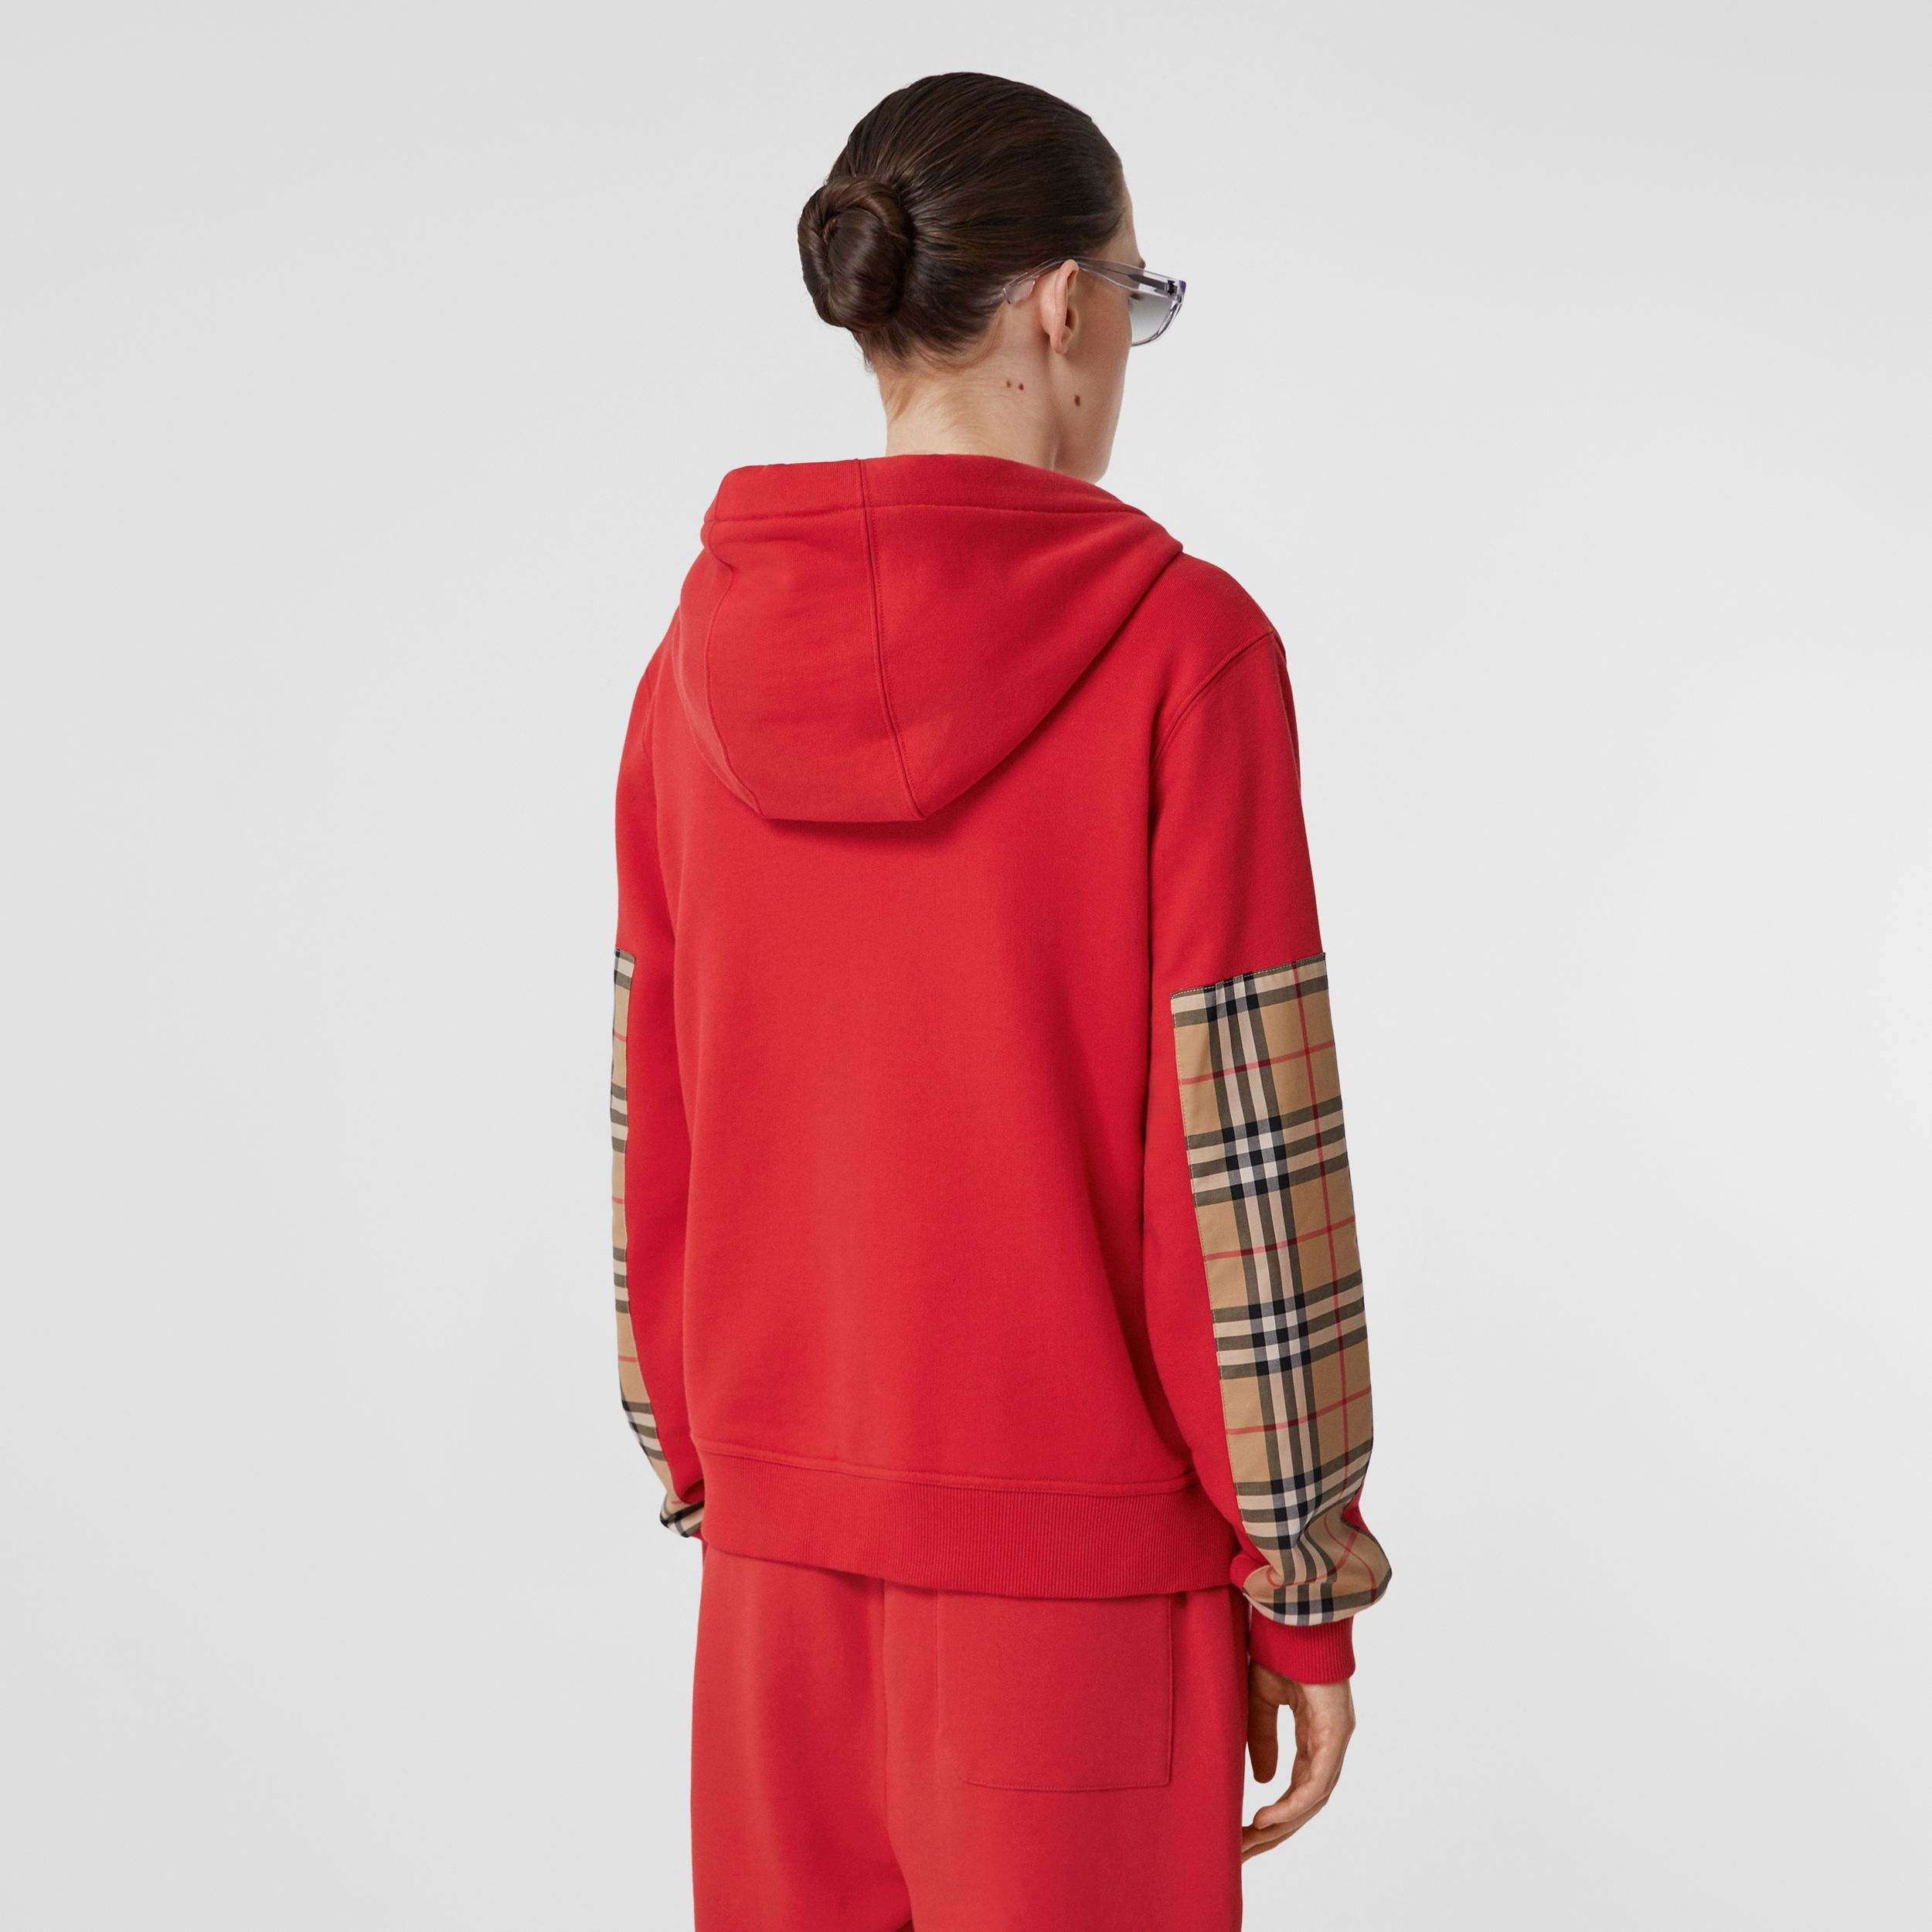 Vintage Check Panel Cotton Oversized Hooded Top in Bright Red - Women | Burberry - 3